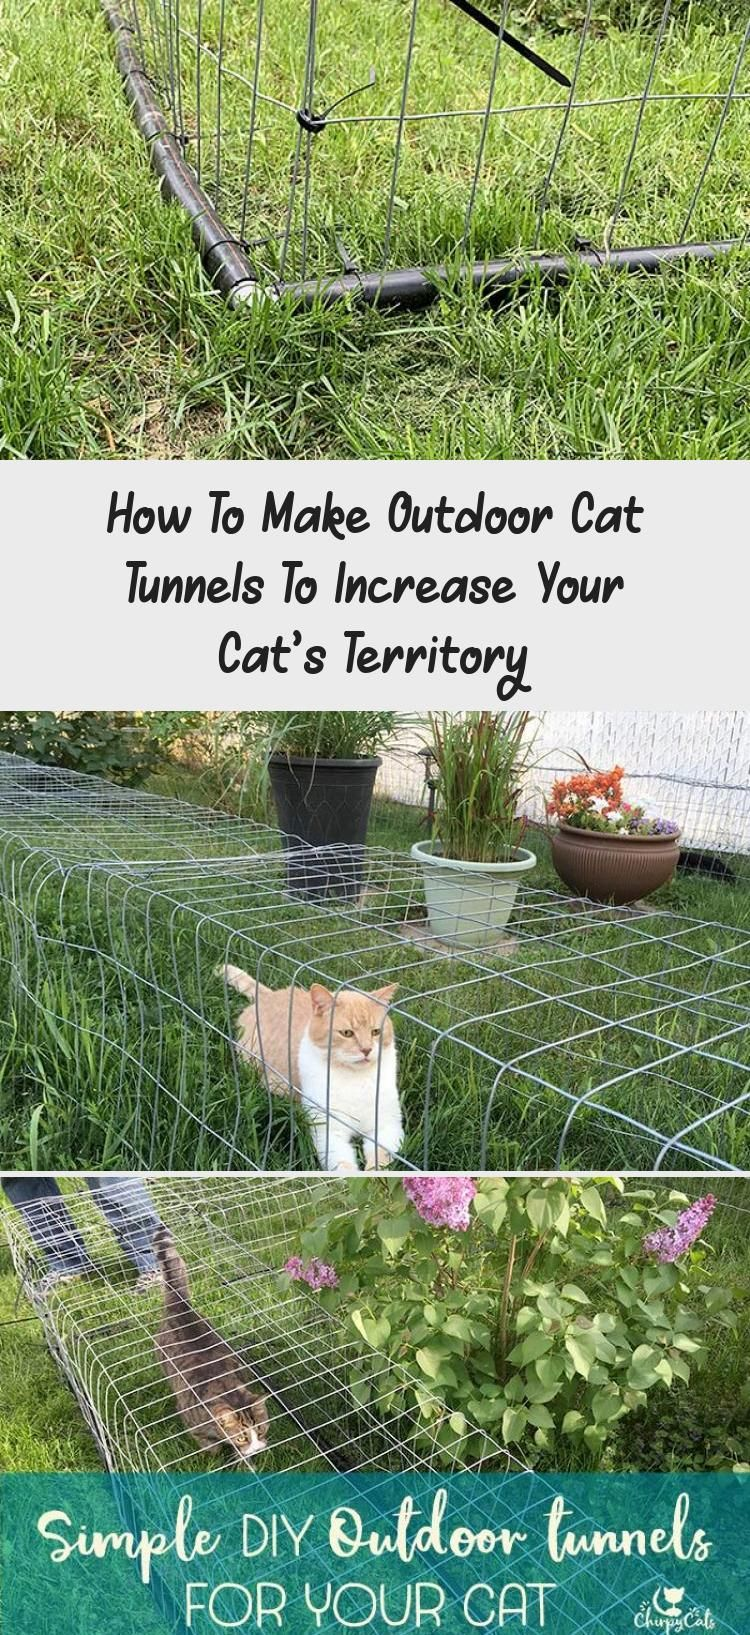 How To Make Outdoor Cat Tunnels To Increase Your Cat's